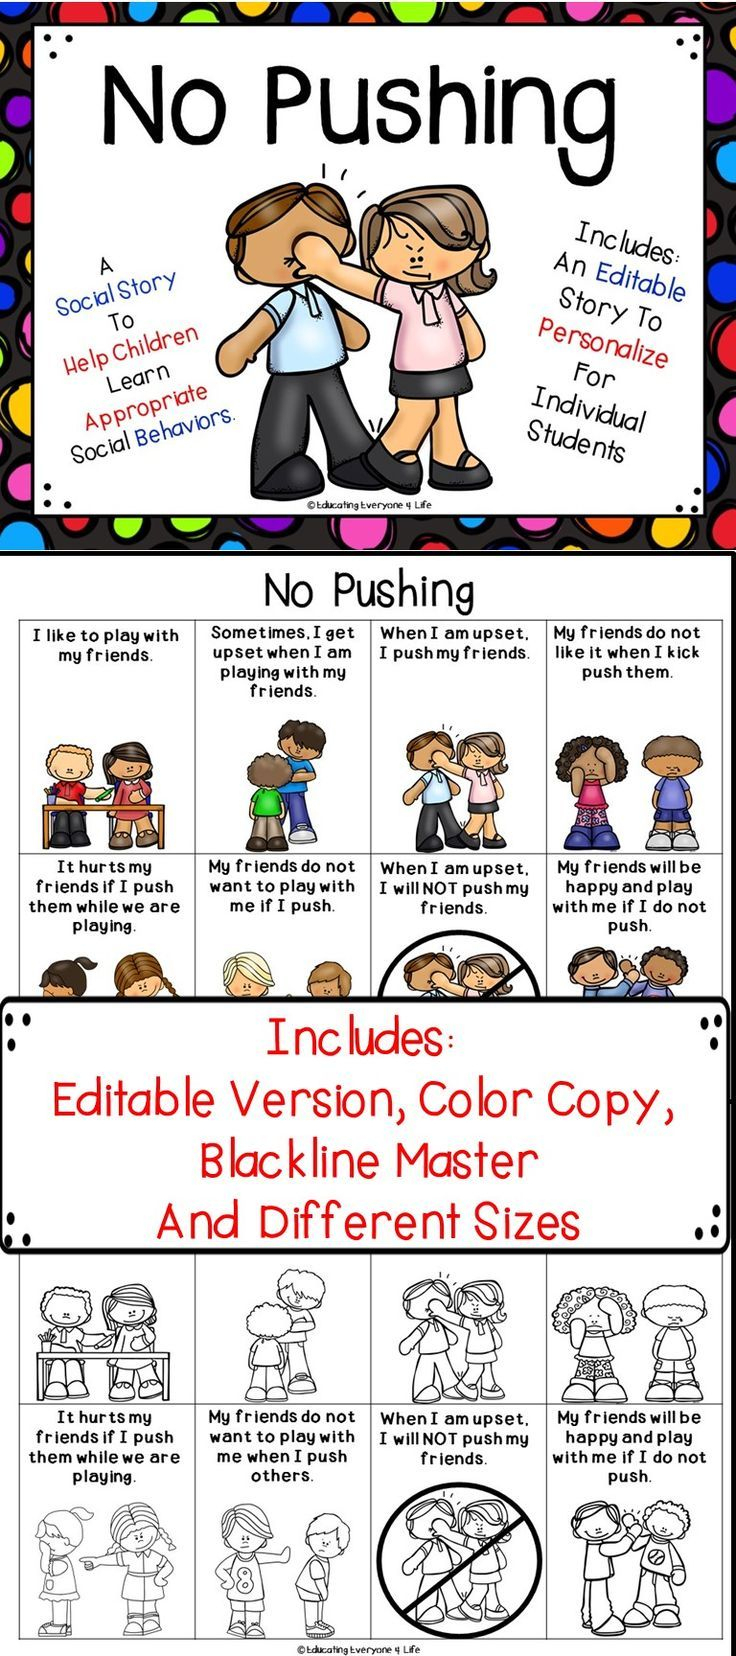 Social Story - No Pushing | Educating Everyone 4 Life | Pinterest - Free Printable Social Stories Making Friends